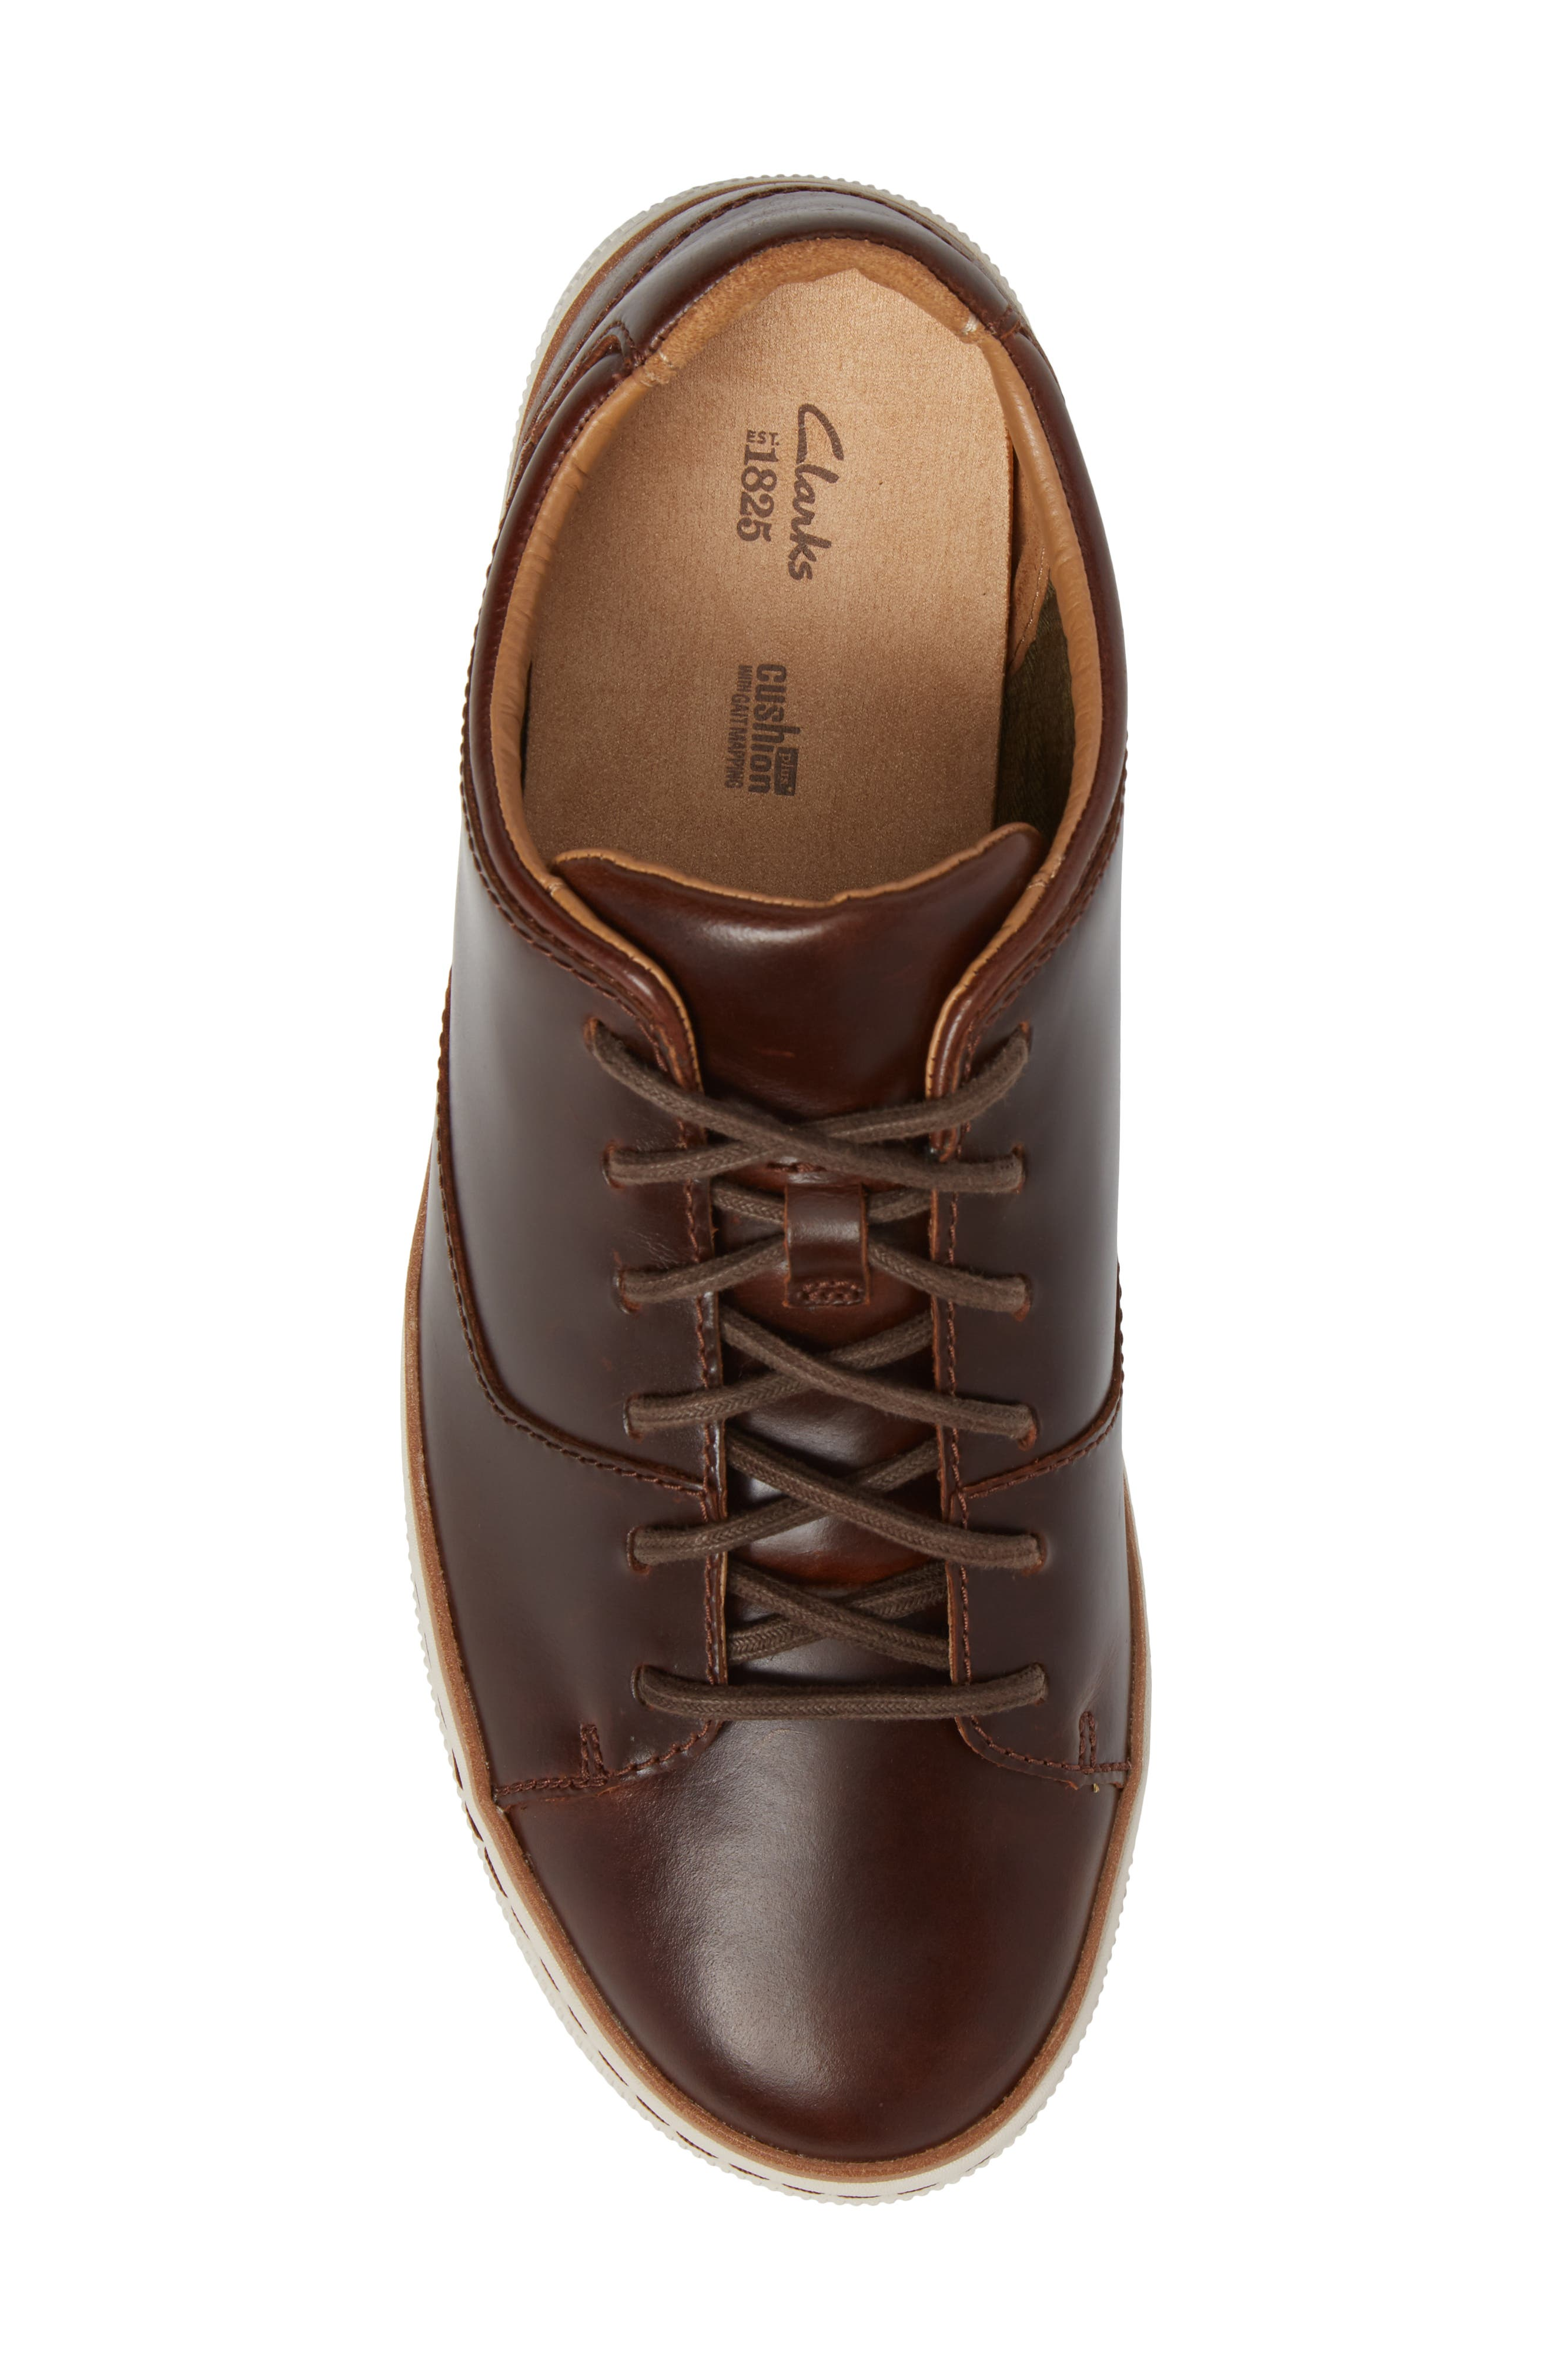 CLARKS<SUP>®</SUP>, Norsen Lace Sneaker, Alternate thumbnail 5, color, DARK TAN LEATHER